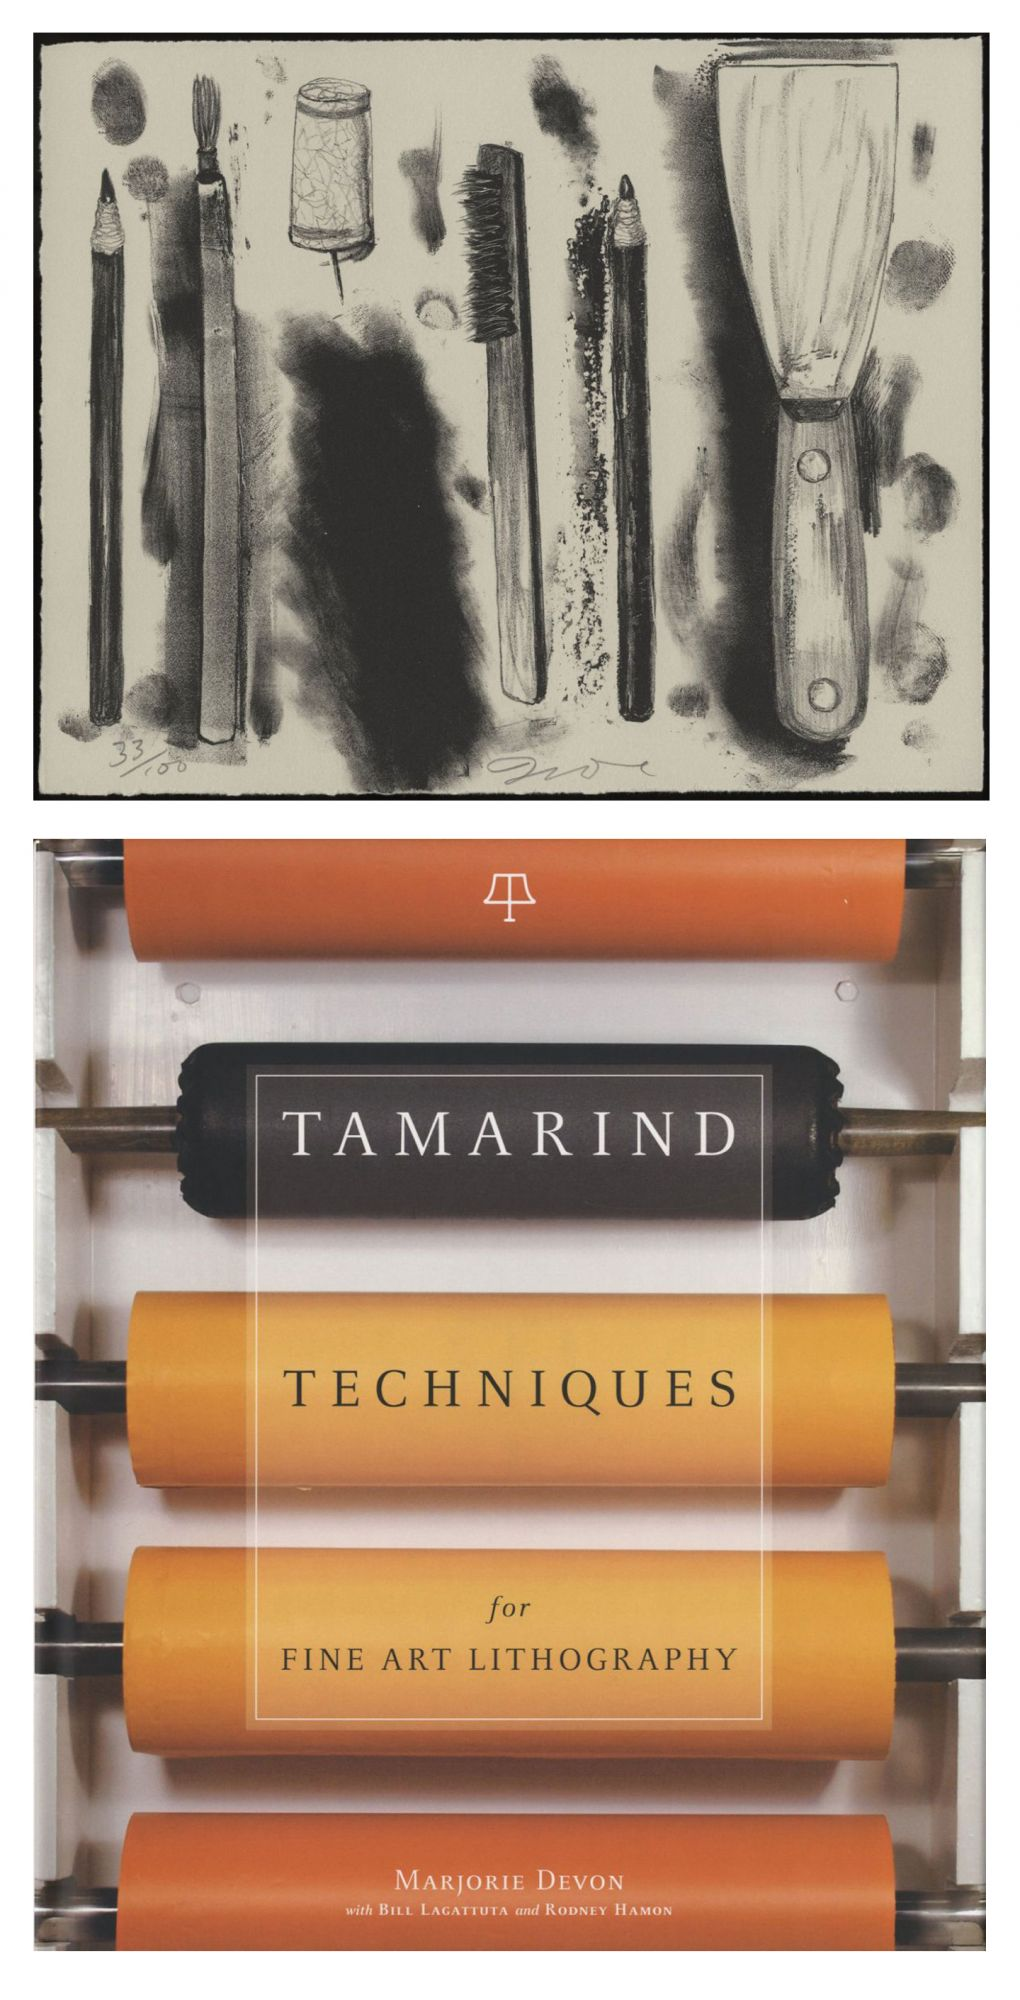 Tamarind Techniques for Fine Art Lithography, Limited Edition (with Lithograph by Jim Dine)